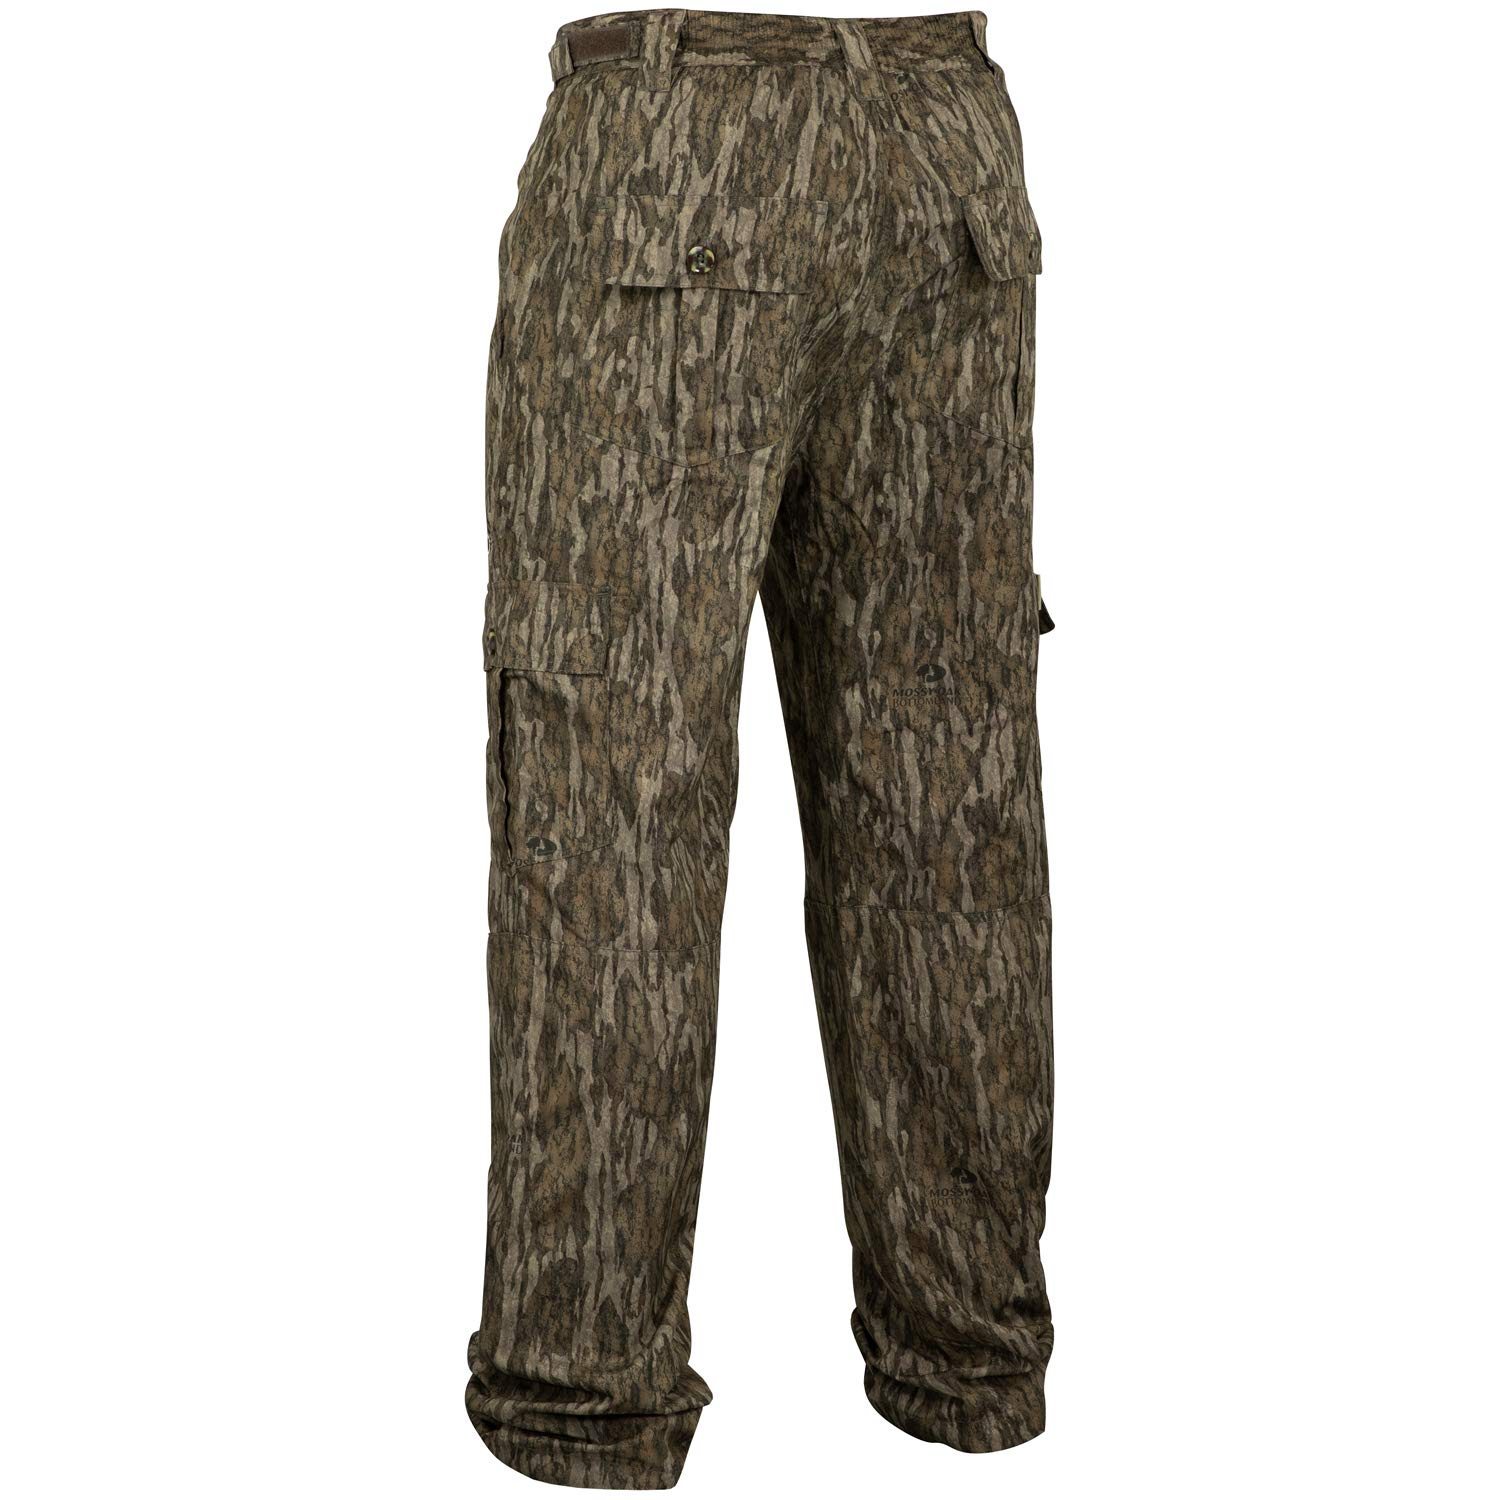 Mossy Oak Men's Tibbee Technical Lightweight Camo Hunting Pants, Bottomland, 3X-Large by Mossy Oak (Image #2)